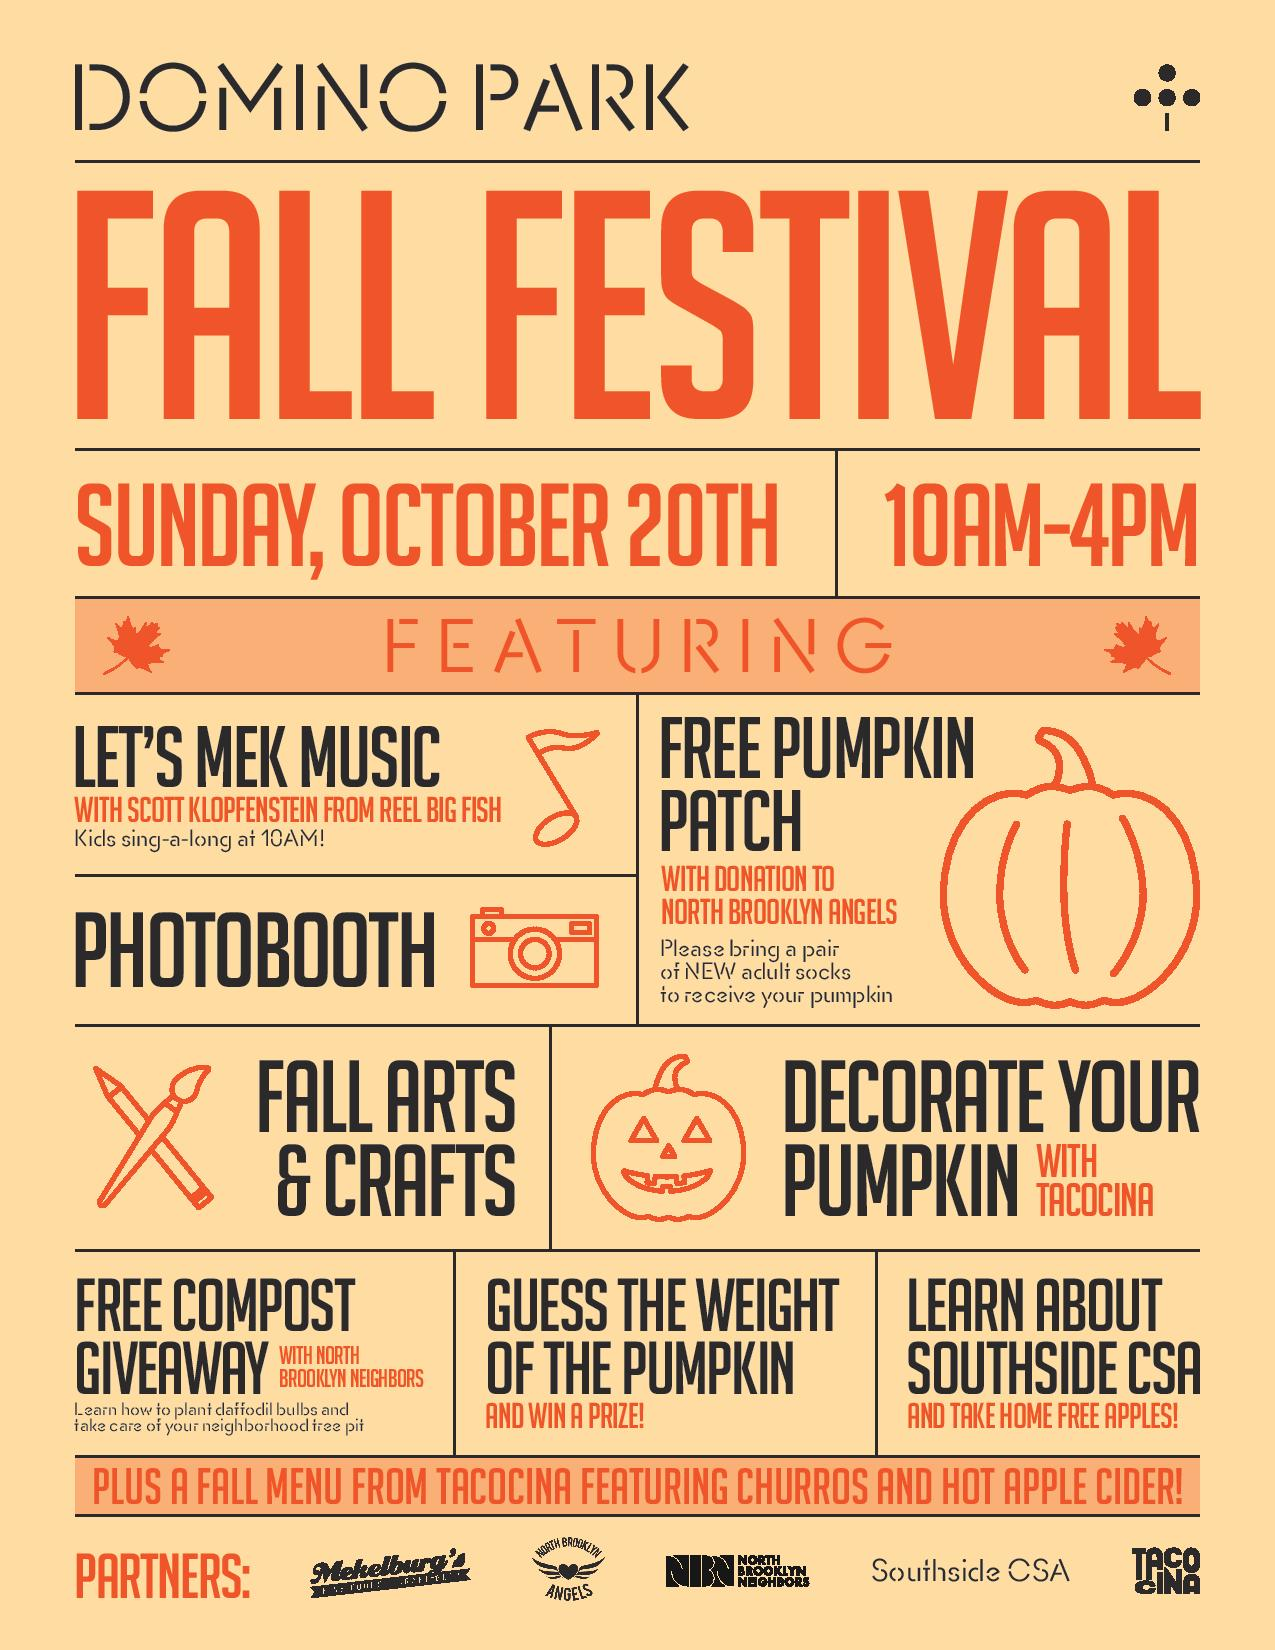 Domino Park Fall Fest Flyer 10.4.19 1-page-001